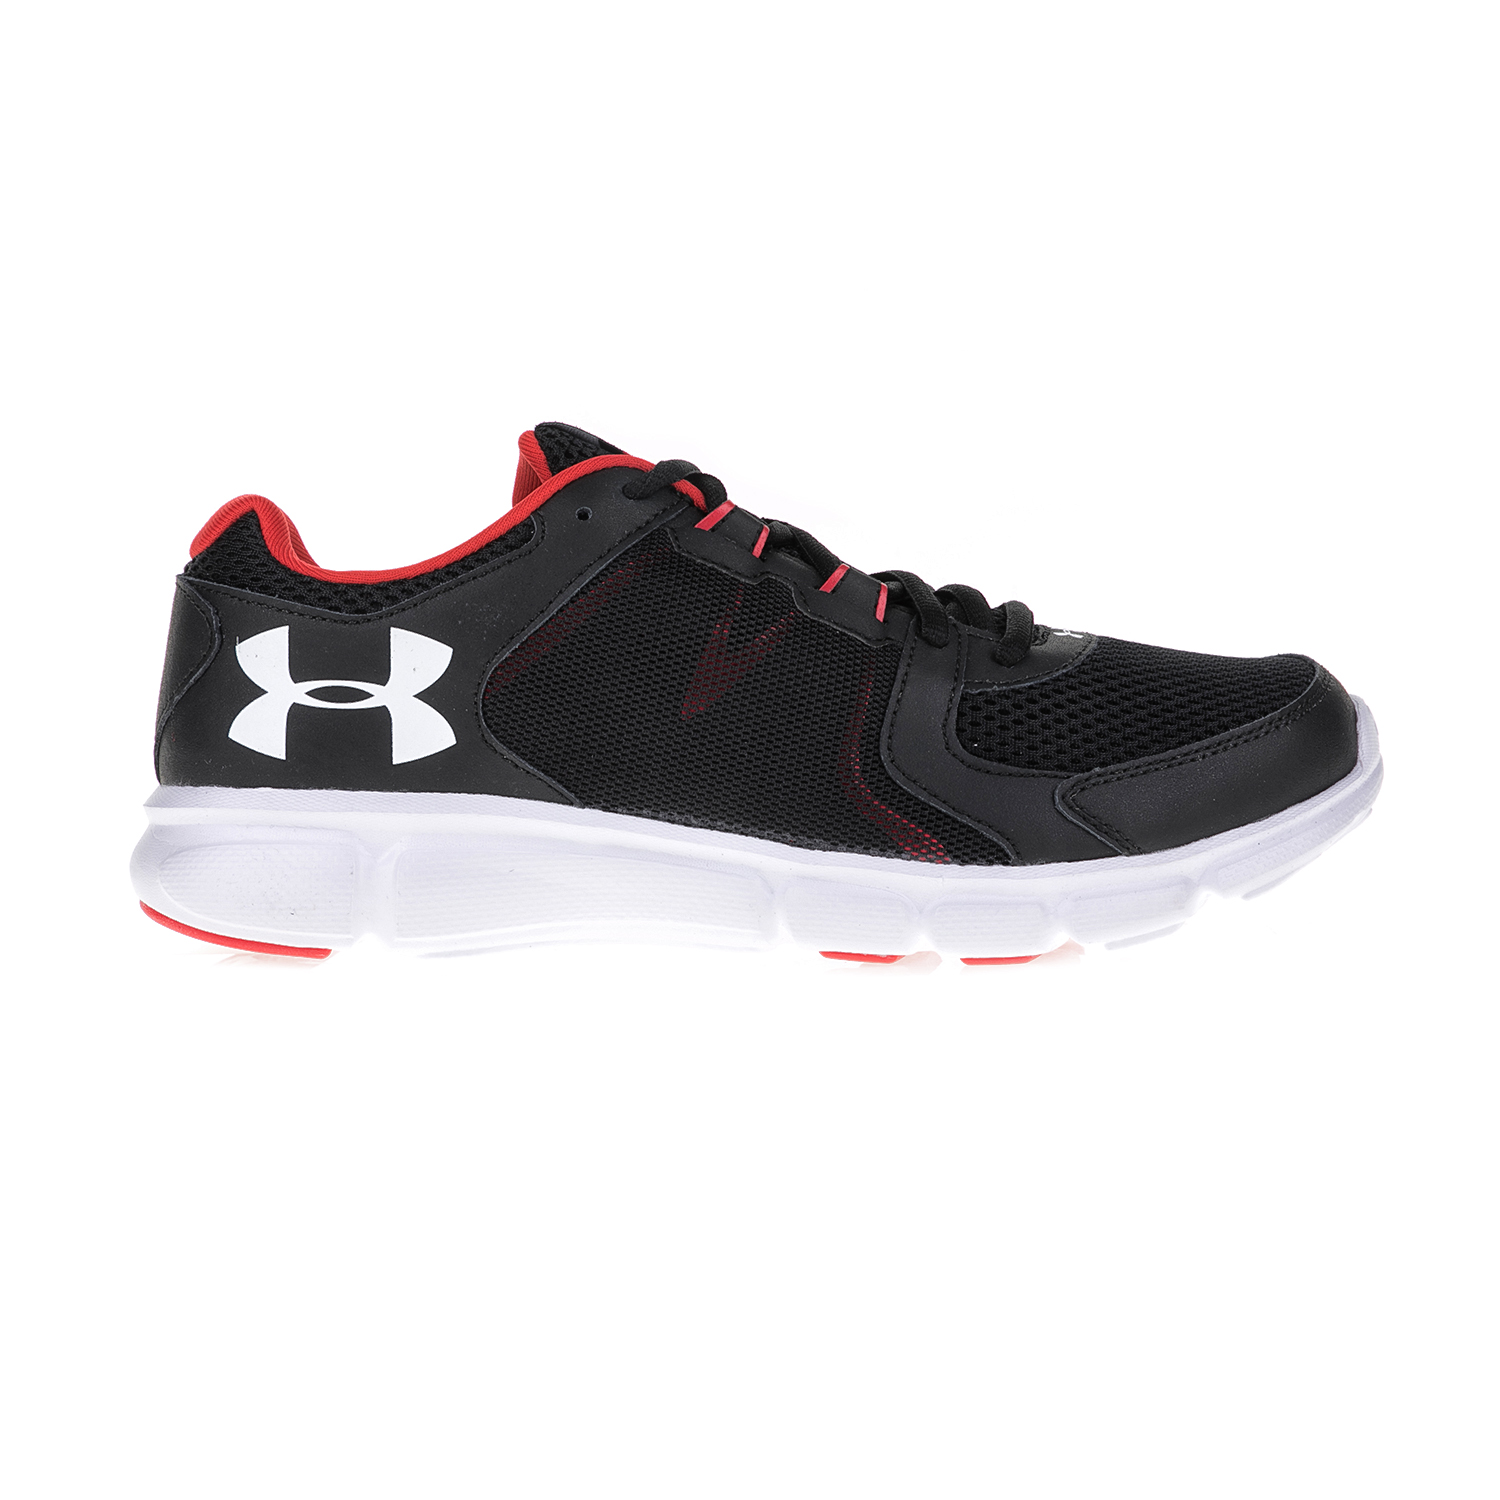 UNDER ARMOUR – Ανδρικά αθλητικά παπούτσια UNDER ARMOUR Thrill 2 μαύρα-κόκκινα